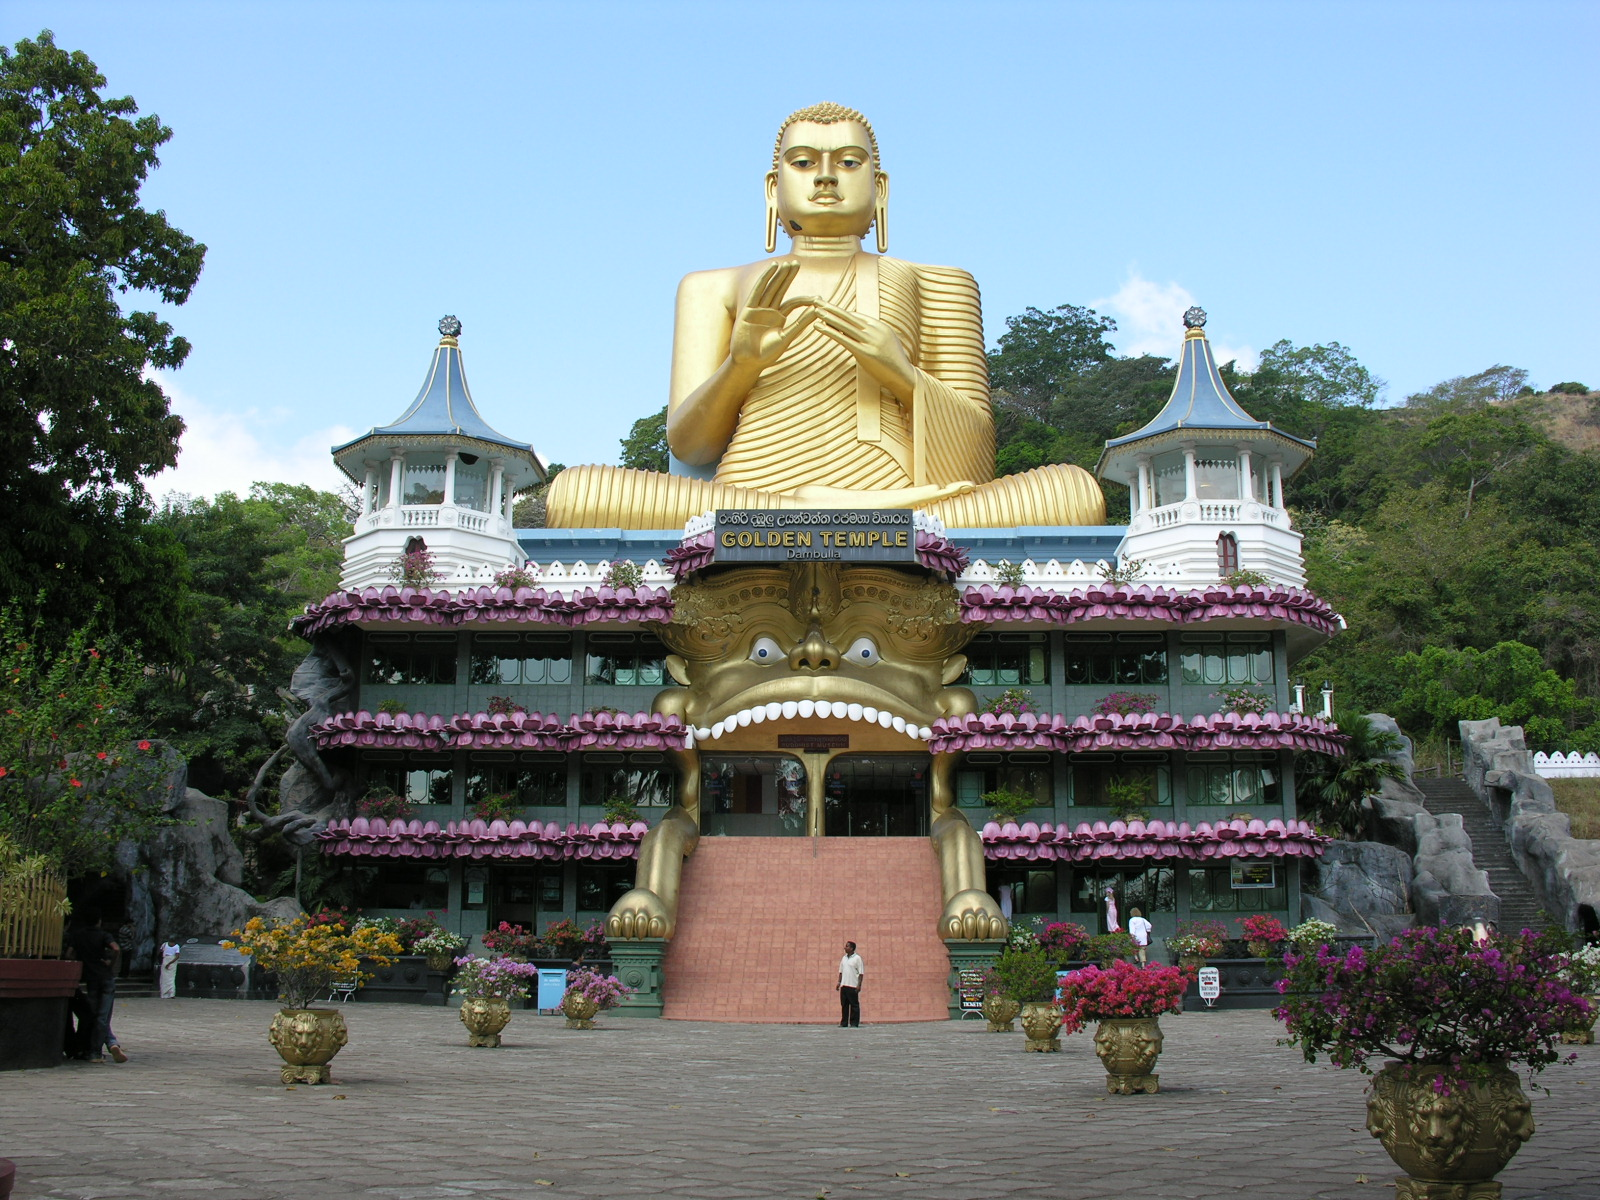 http://www.prasannaholidays.com/wp-content/uploads/2014/05/Golden-Temple-Dambulla-Most-Popular-Tourist-Attractions-in-Sri-Lanka.jpg